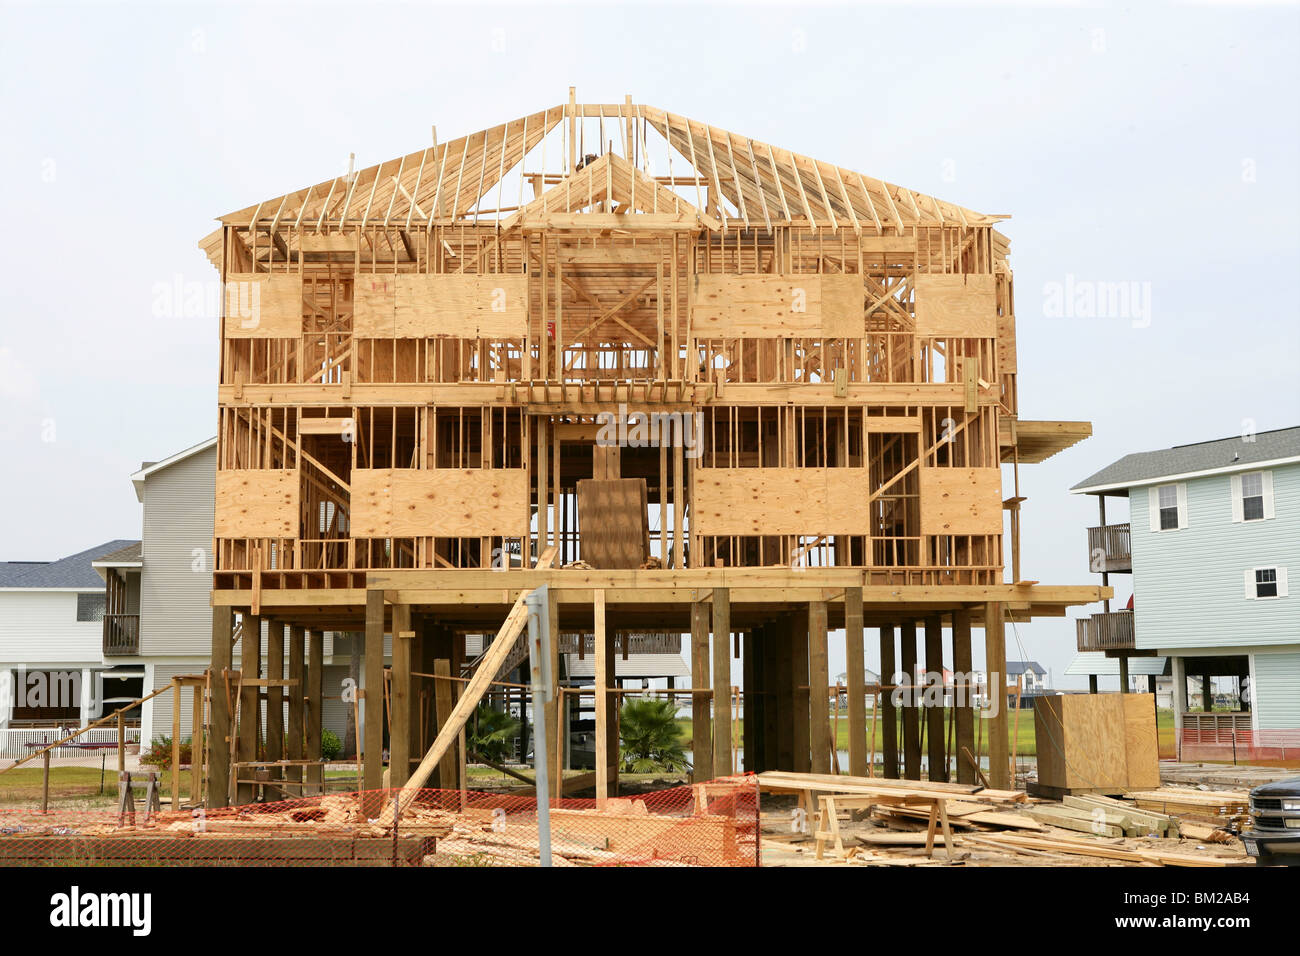 Attractive Wood House Contruction, American Wooden Build Structure